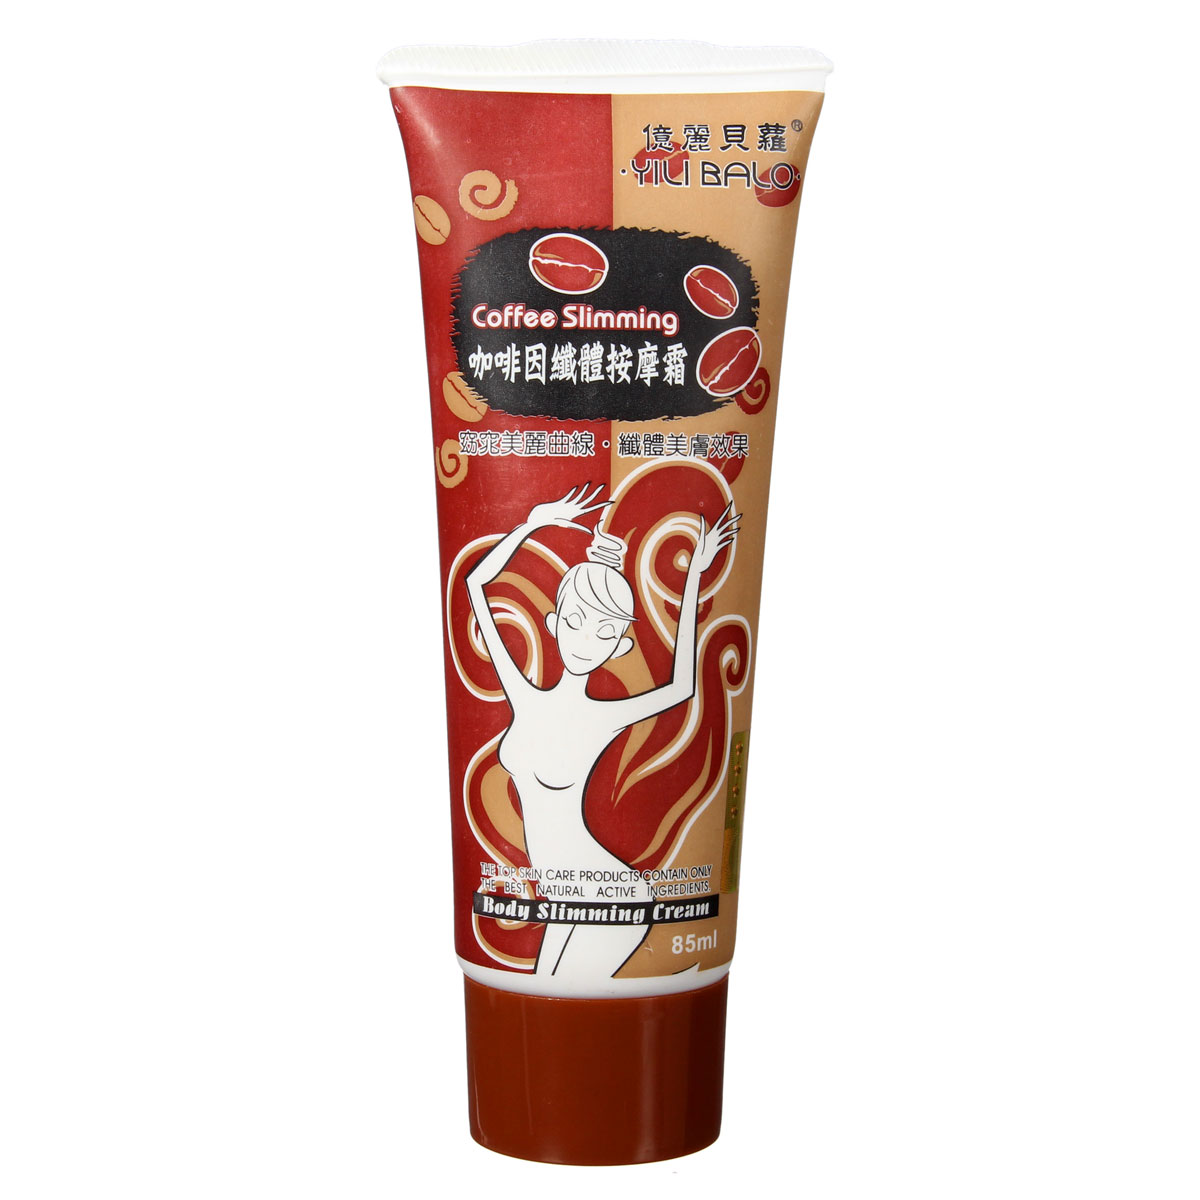 Coffee Body Cellulite Slimming Cream Fat Burning Weight Loss Women